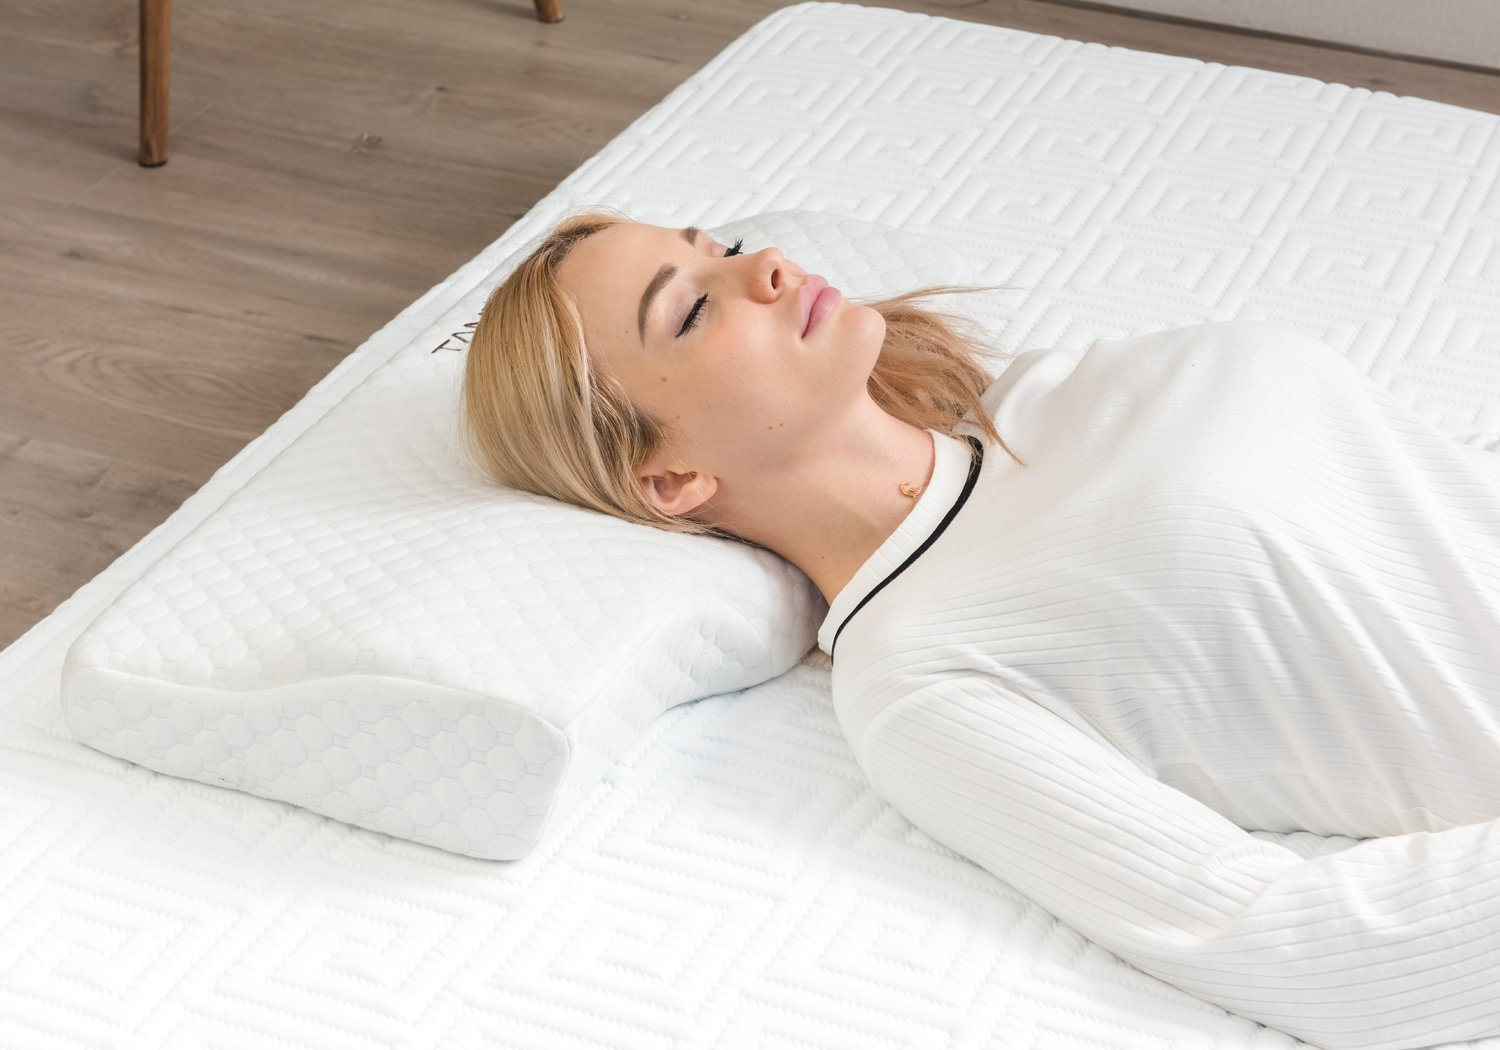 travel pillows pain uk and support pillow bath best reading dual sleep beyond foam neck for memory in bed